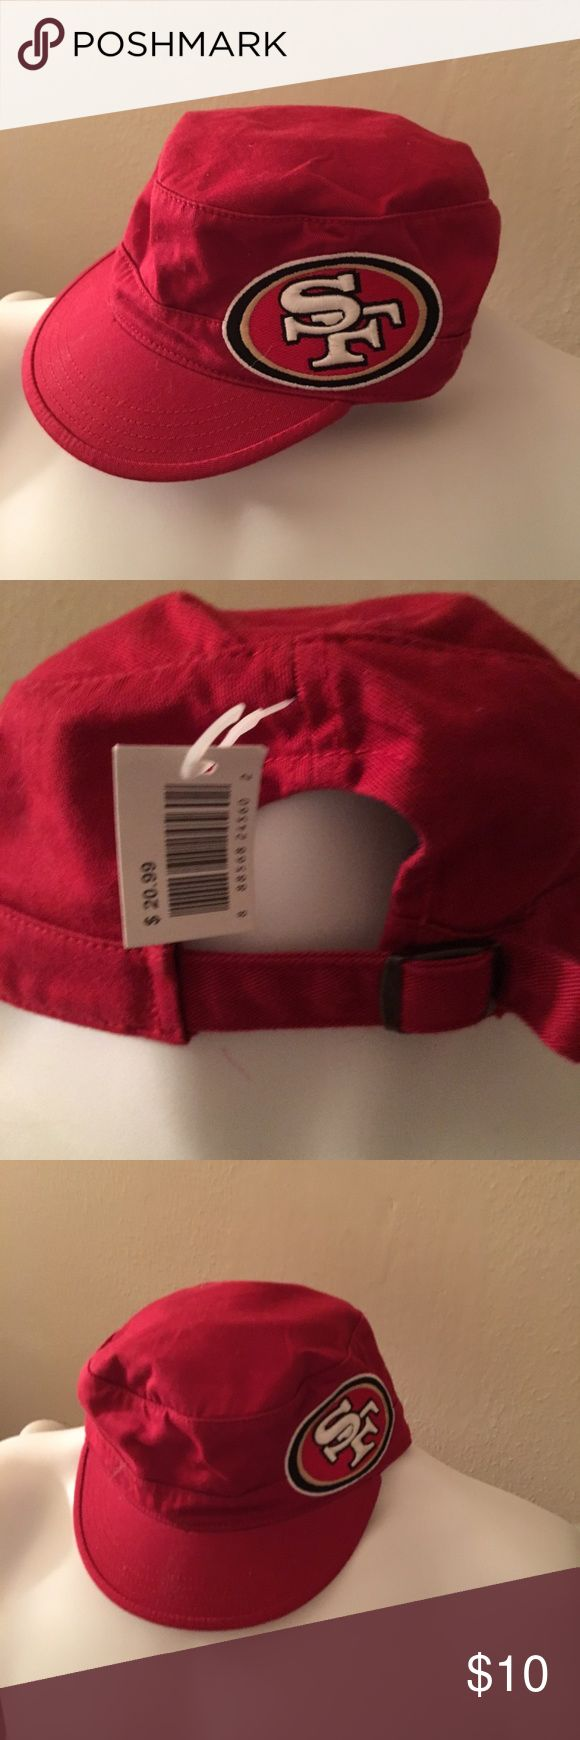 NFL San Francisco 49ers hat NWT football season is just around the corner get it while you at a good price🏈🏈🏈 San Francisco 49ers NFL Accessories Hats